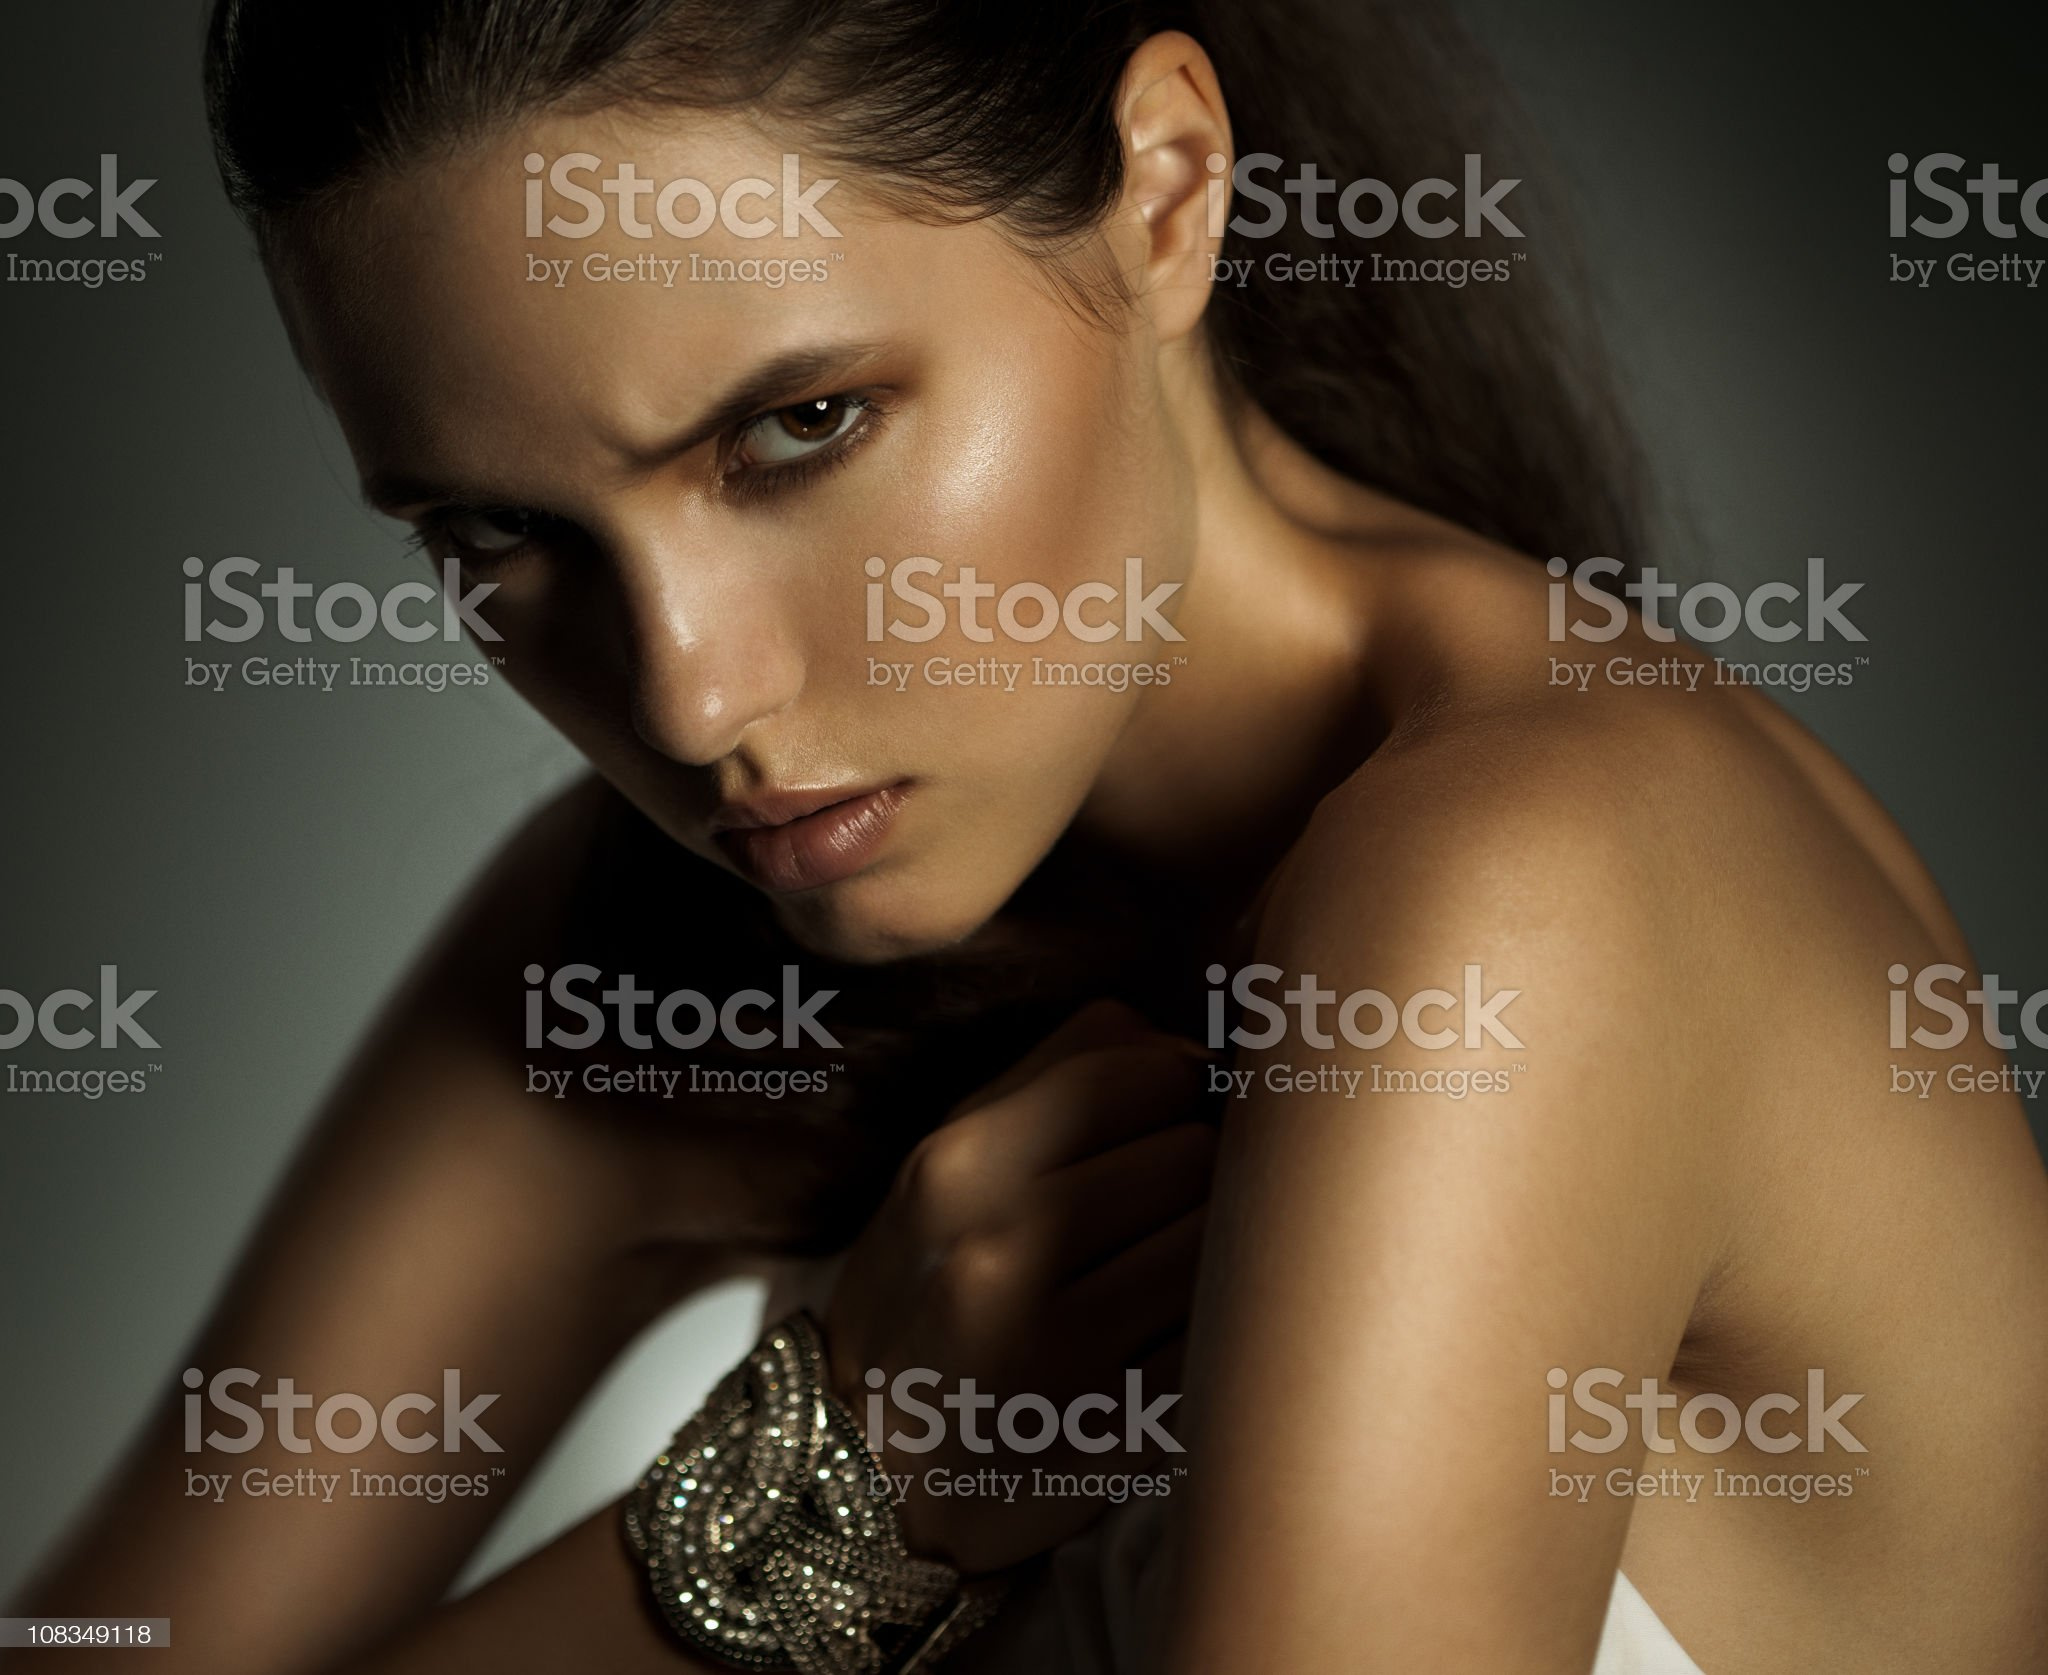 Beauty portrait of sensual young woman on dark background royalty-free stock photo